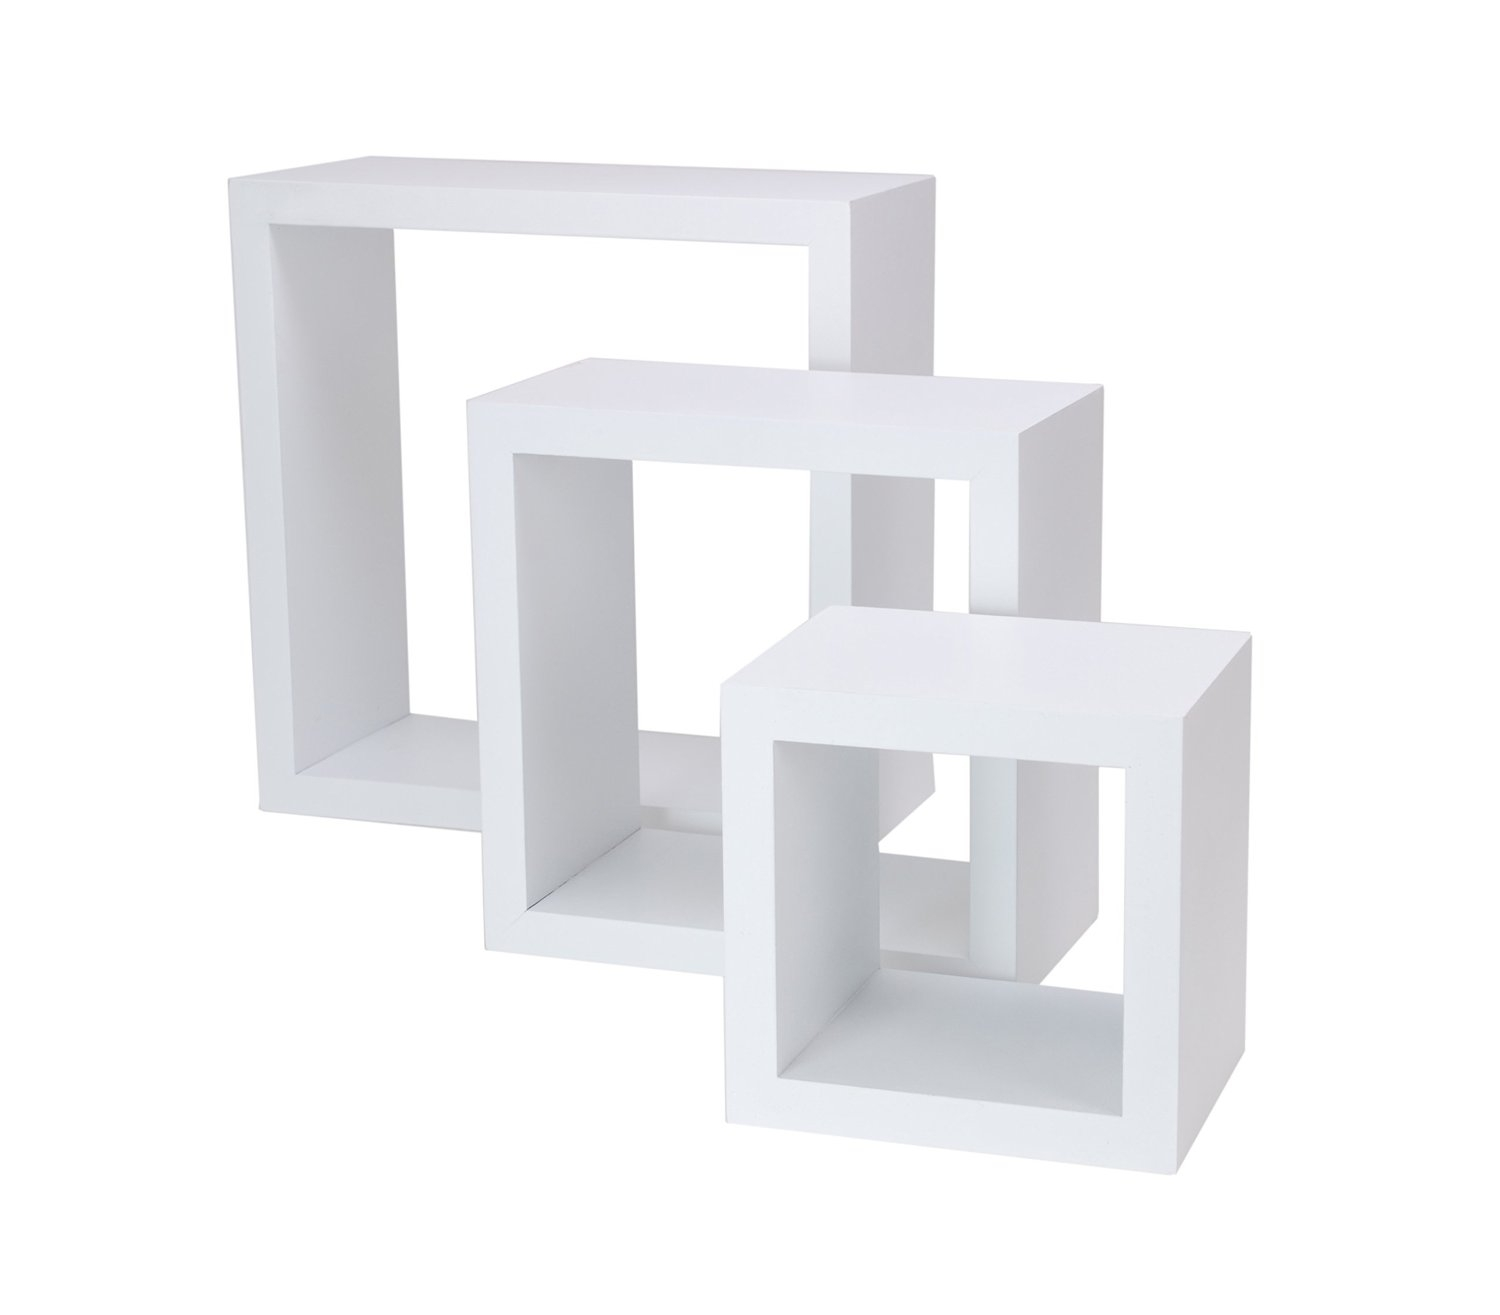 White Floating Wall Shelves Set Of 3 For Your Rooms Review With White Wall Shelves (View 15 of 15)